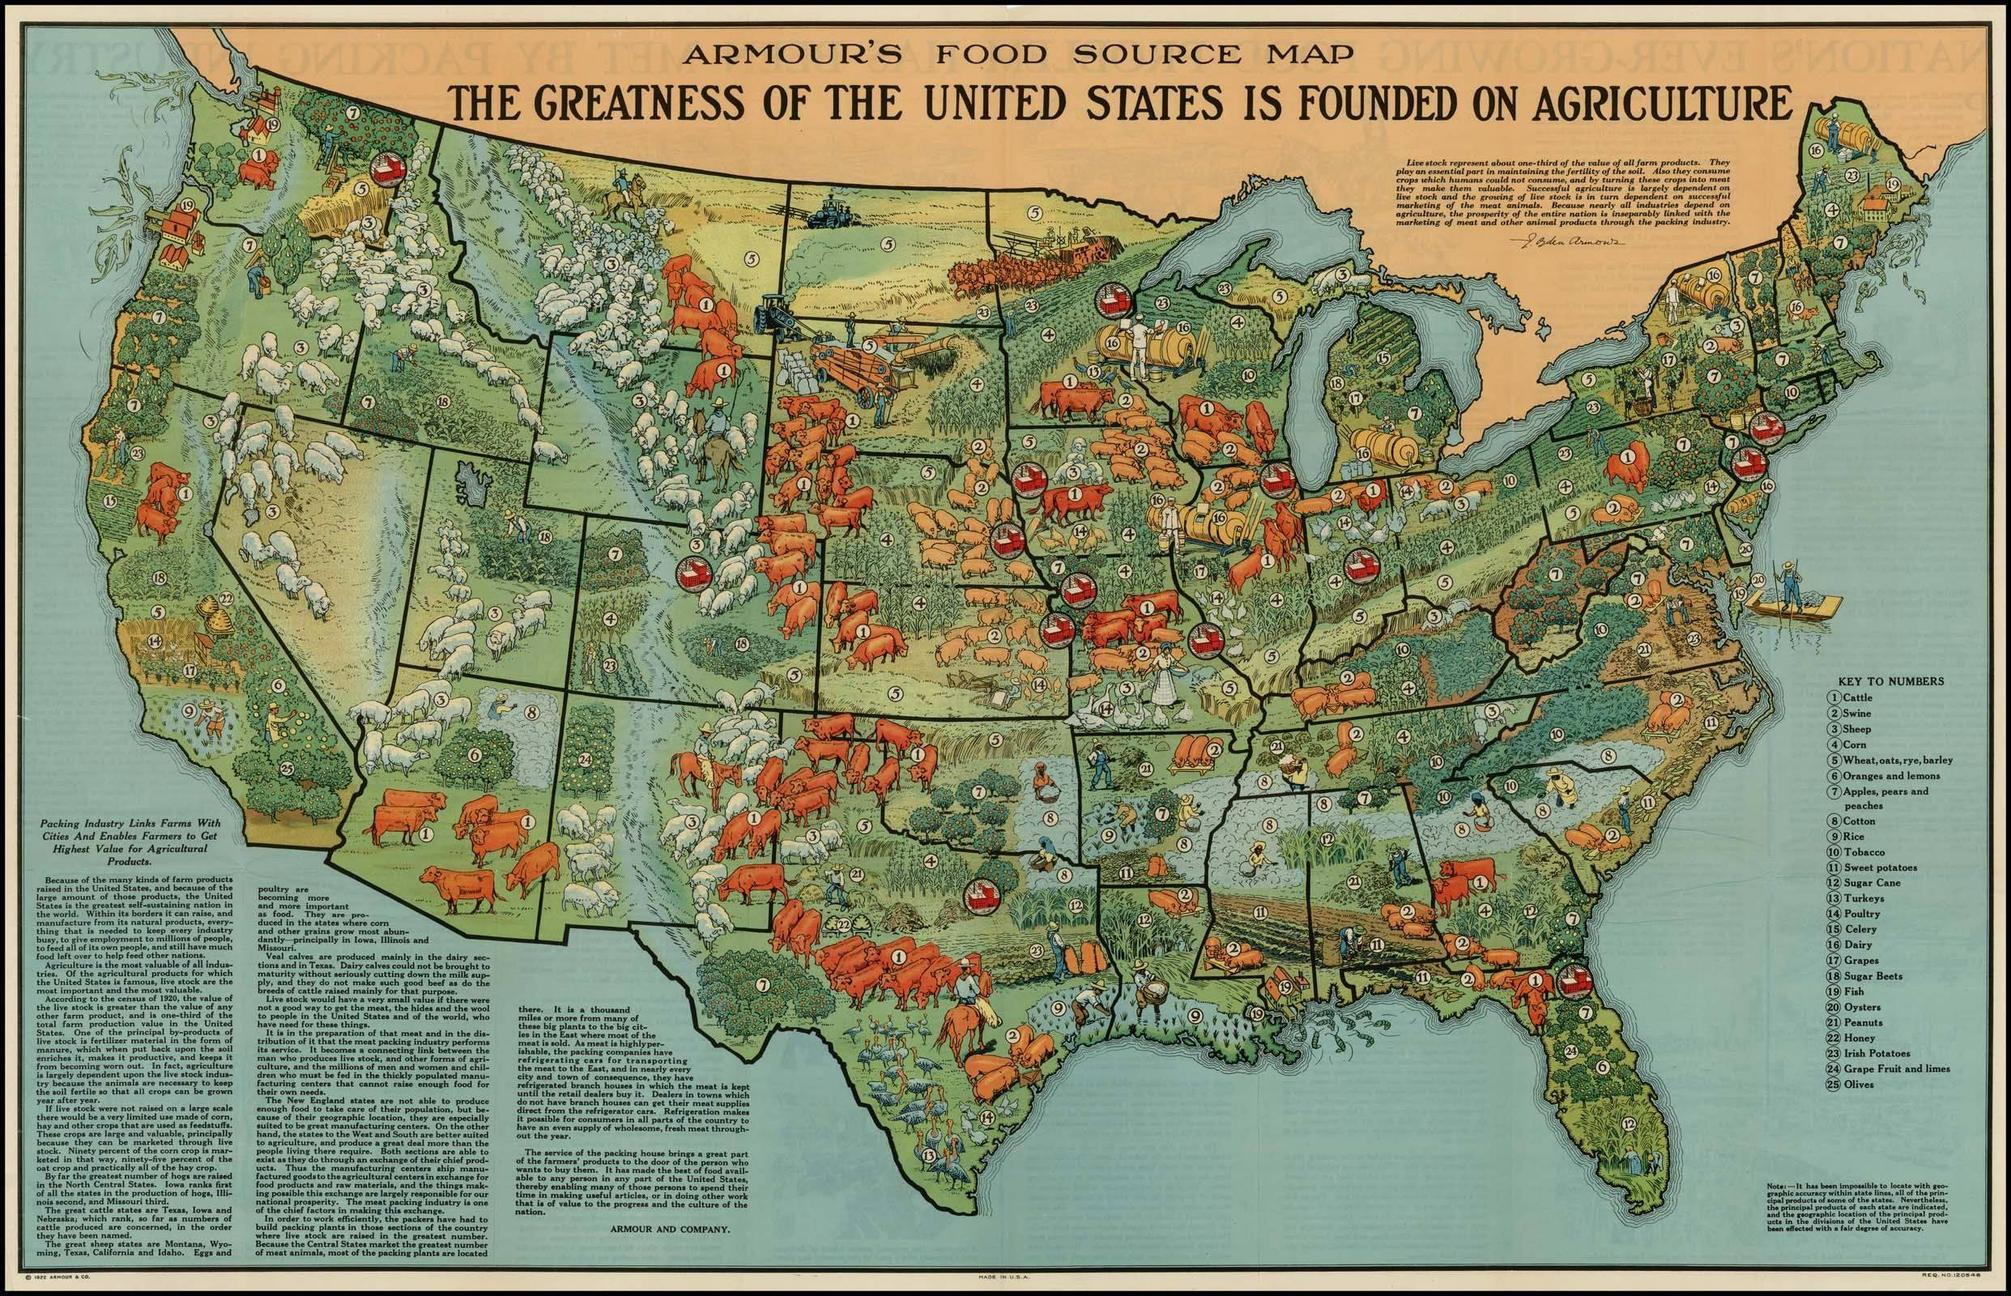 Maps That Explain Food In America Voxcom - Us agriculture map